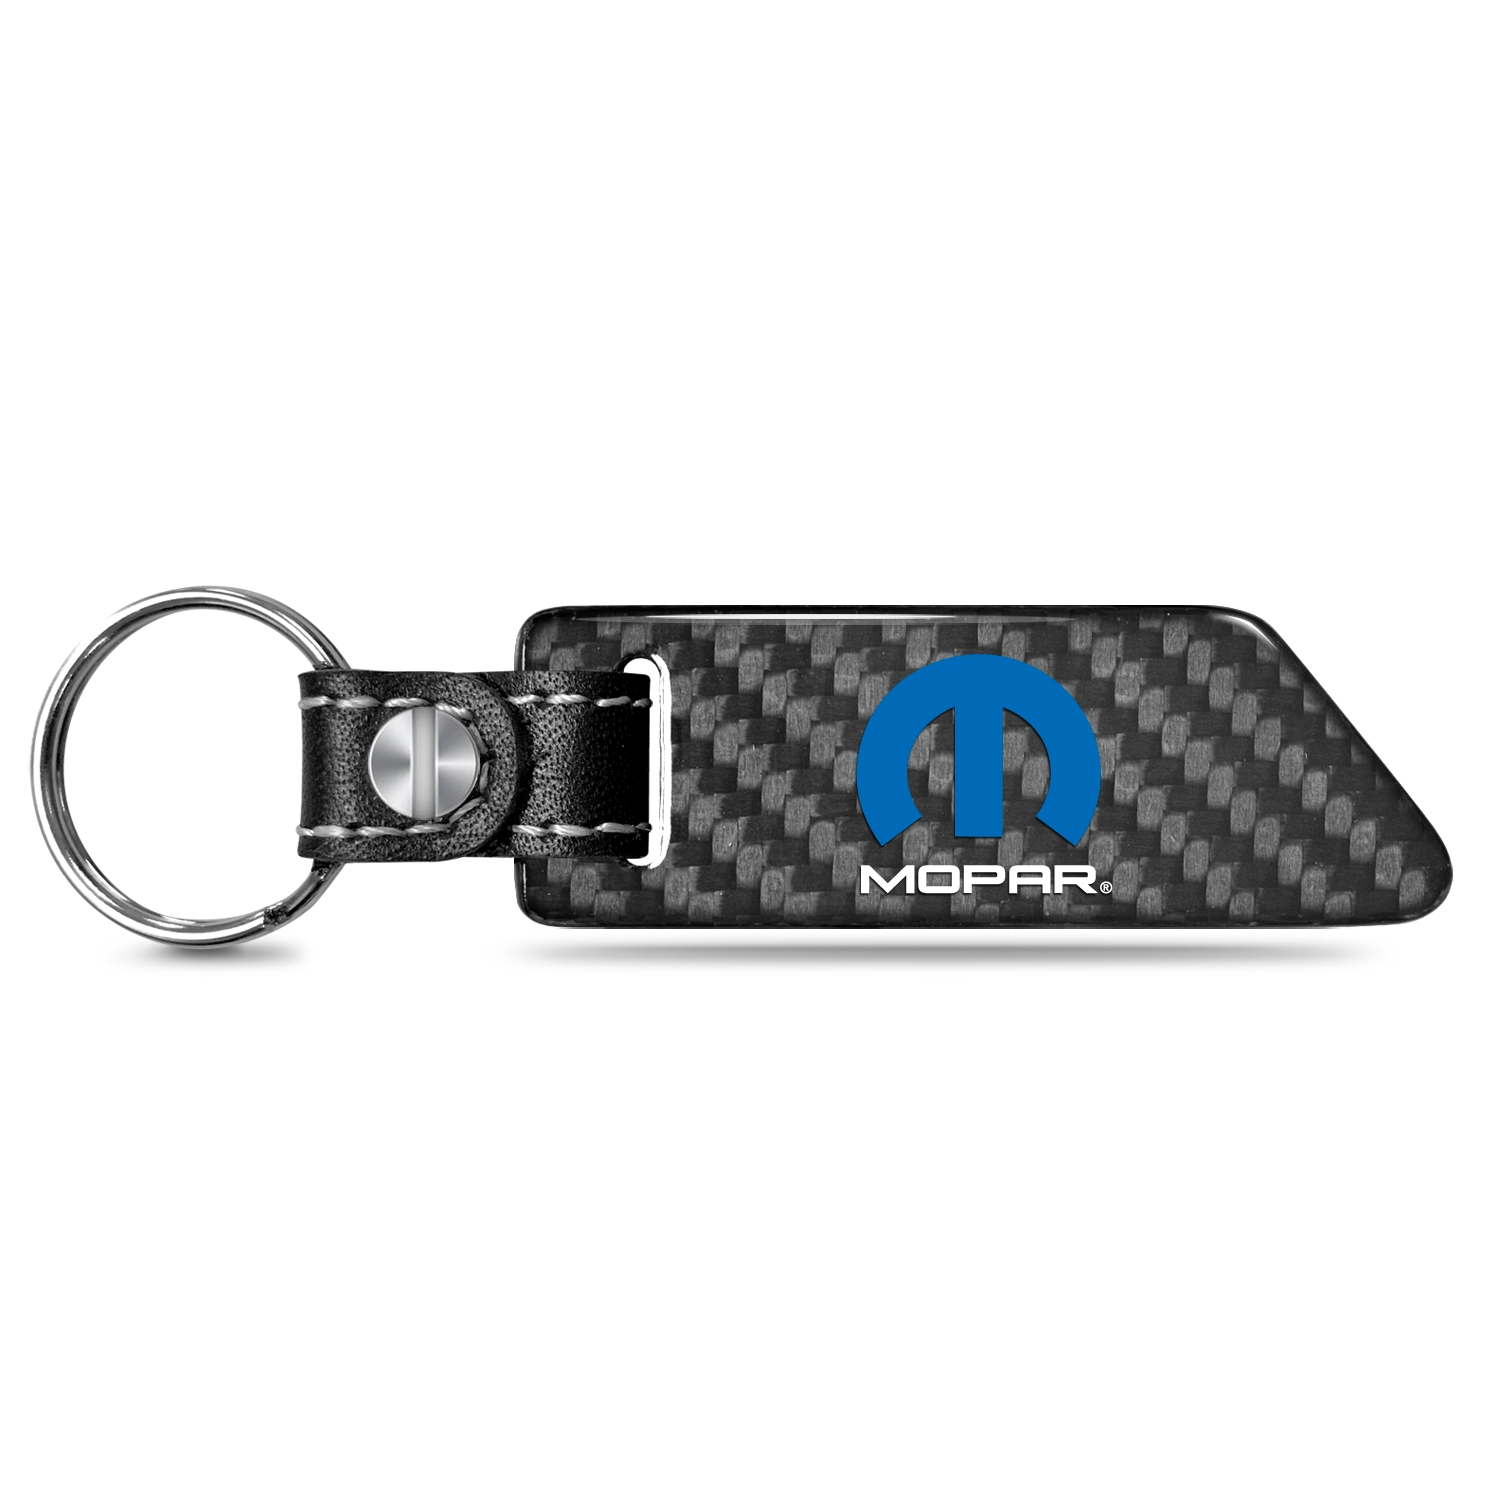 Mopar Real Carbon Fiber Blade Style with Black Leather Strap Key Chain